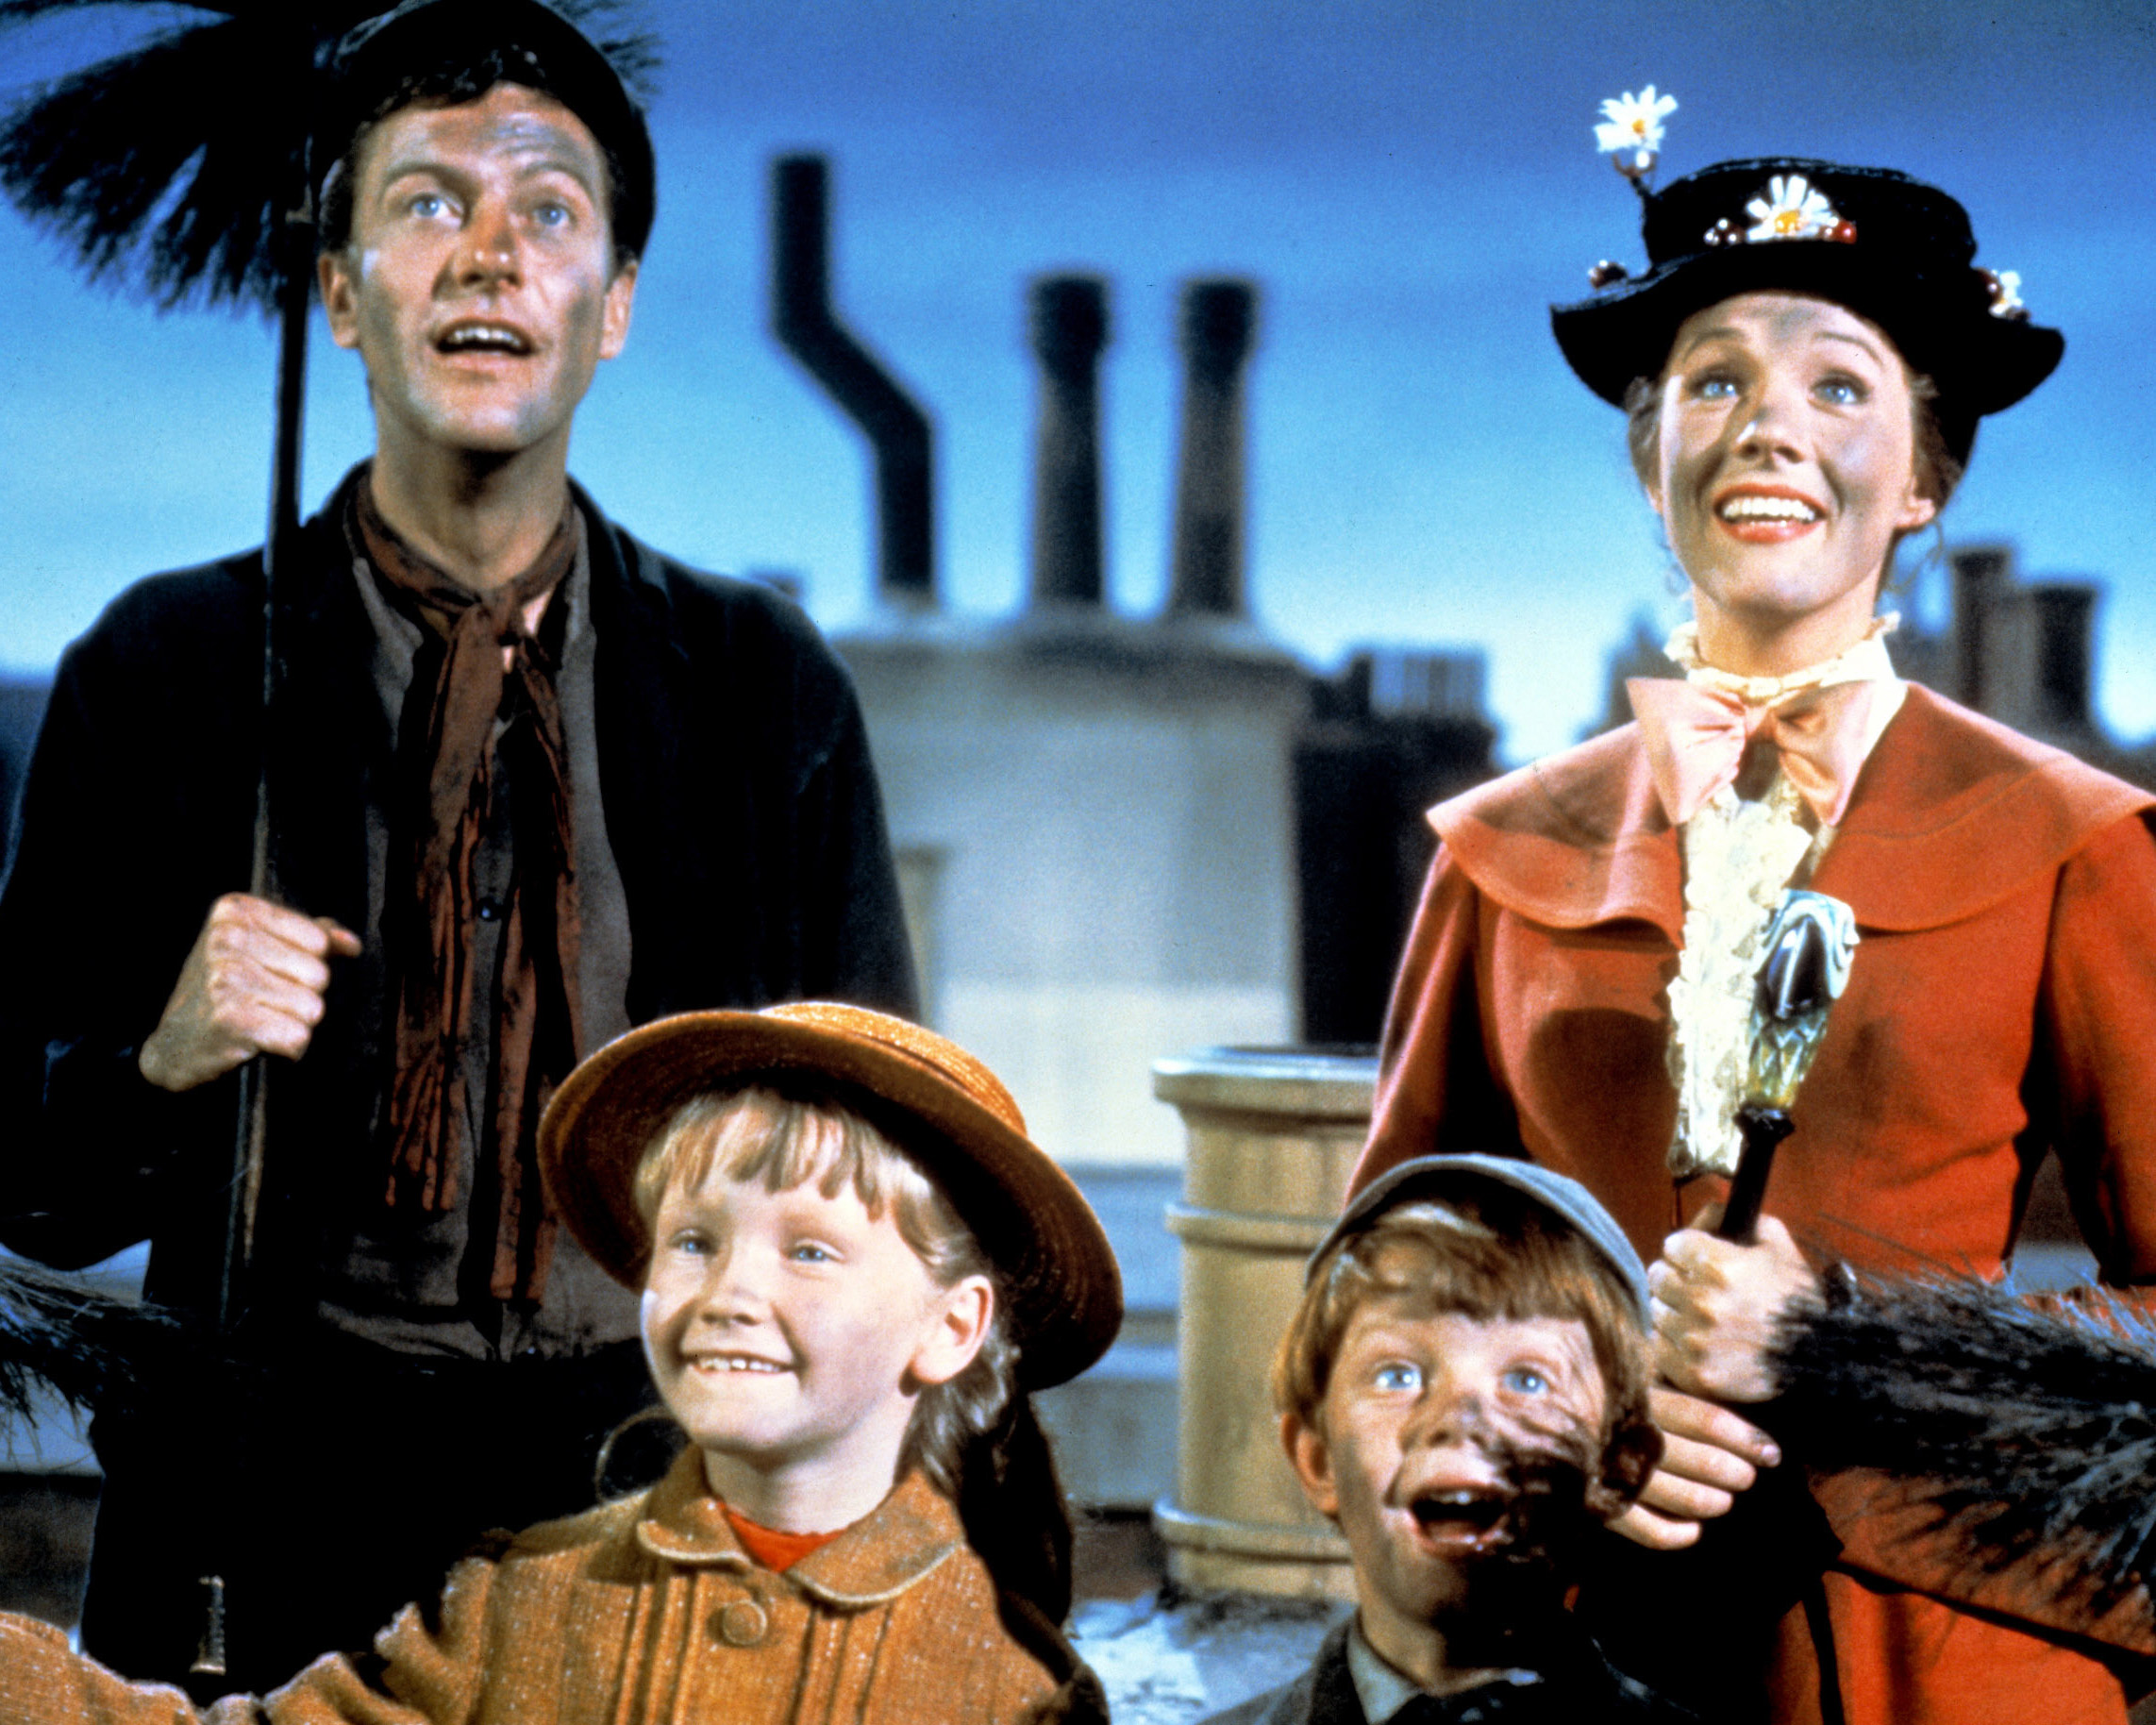 Dick Van Dyke as Bert, Julie Andrews as Mary Poppins, Karen Dotrice as Jane Banks and Matthew Garber as Michael Banks in the Disney musical 'Mary Poppins.'